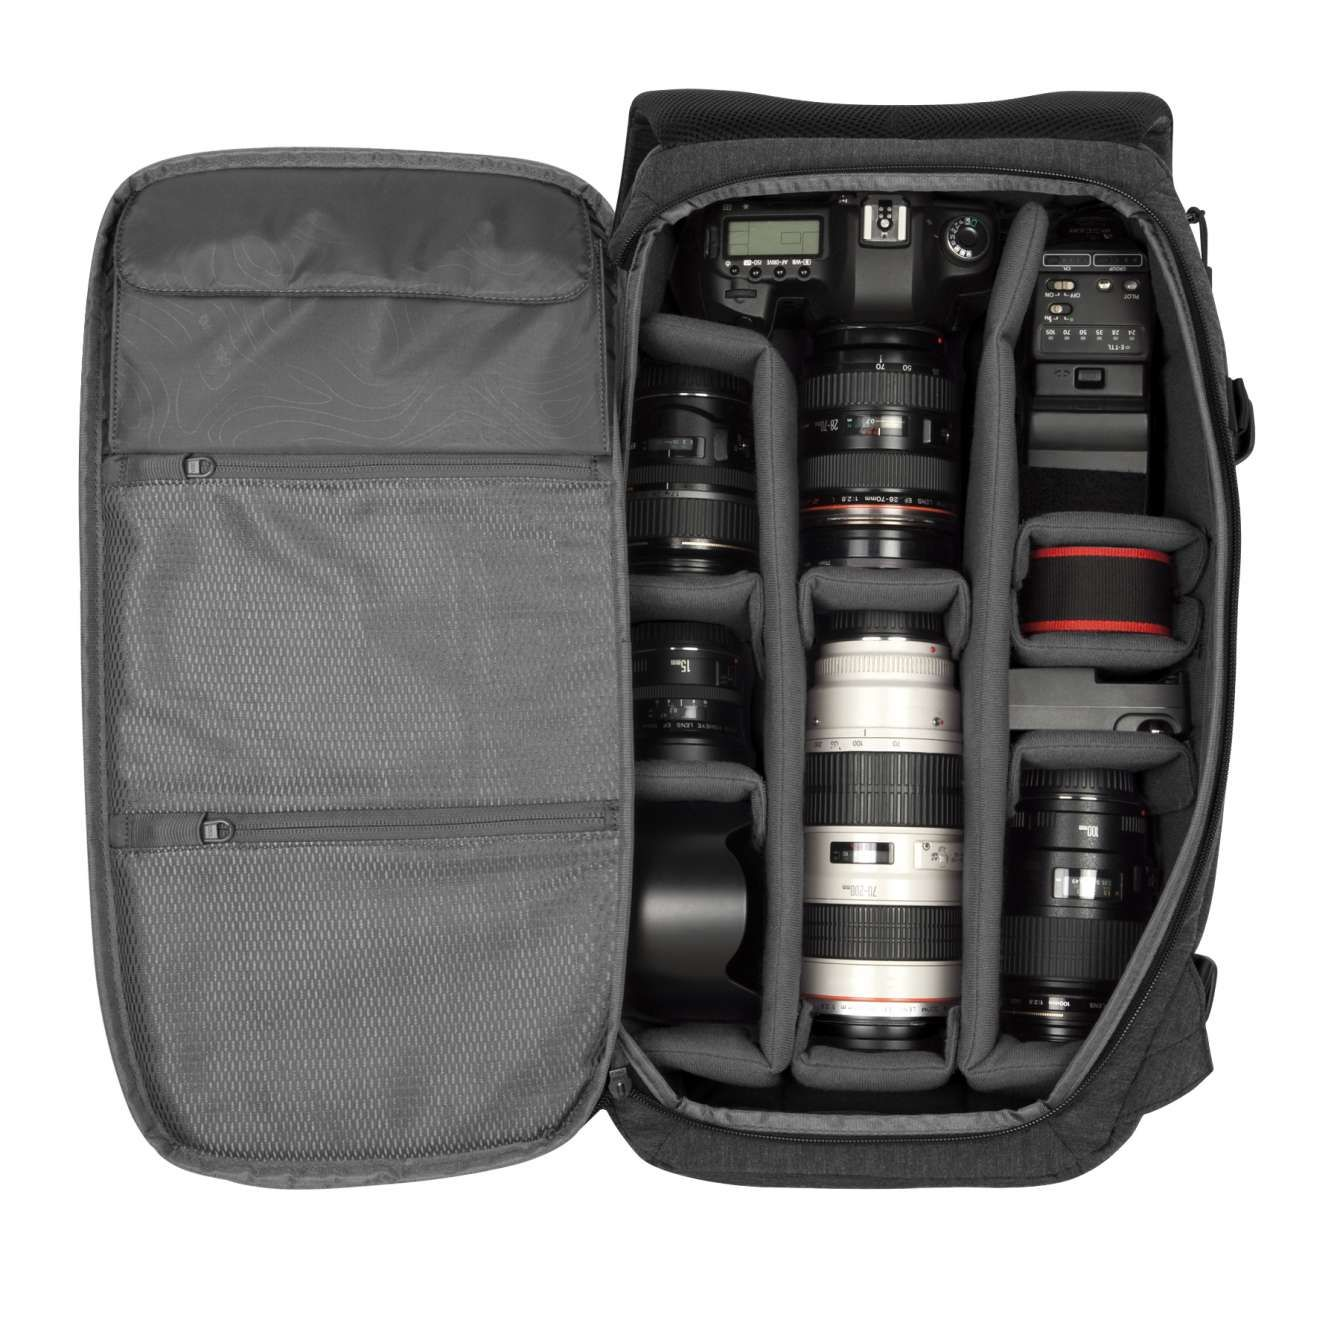 Camera Bag For Dslr Camera 1000 images about bags on pinterest